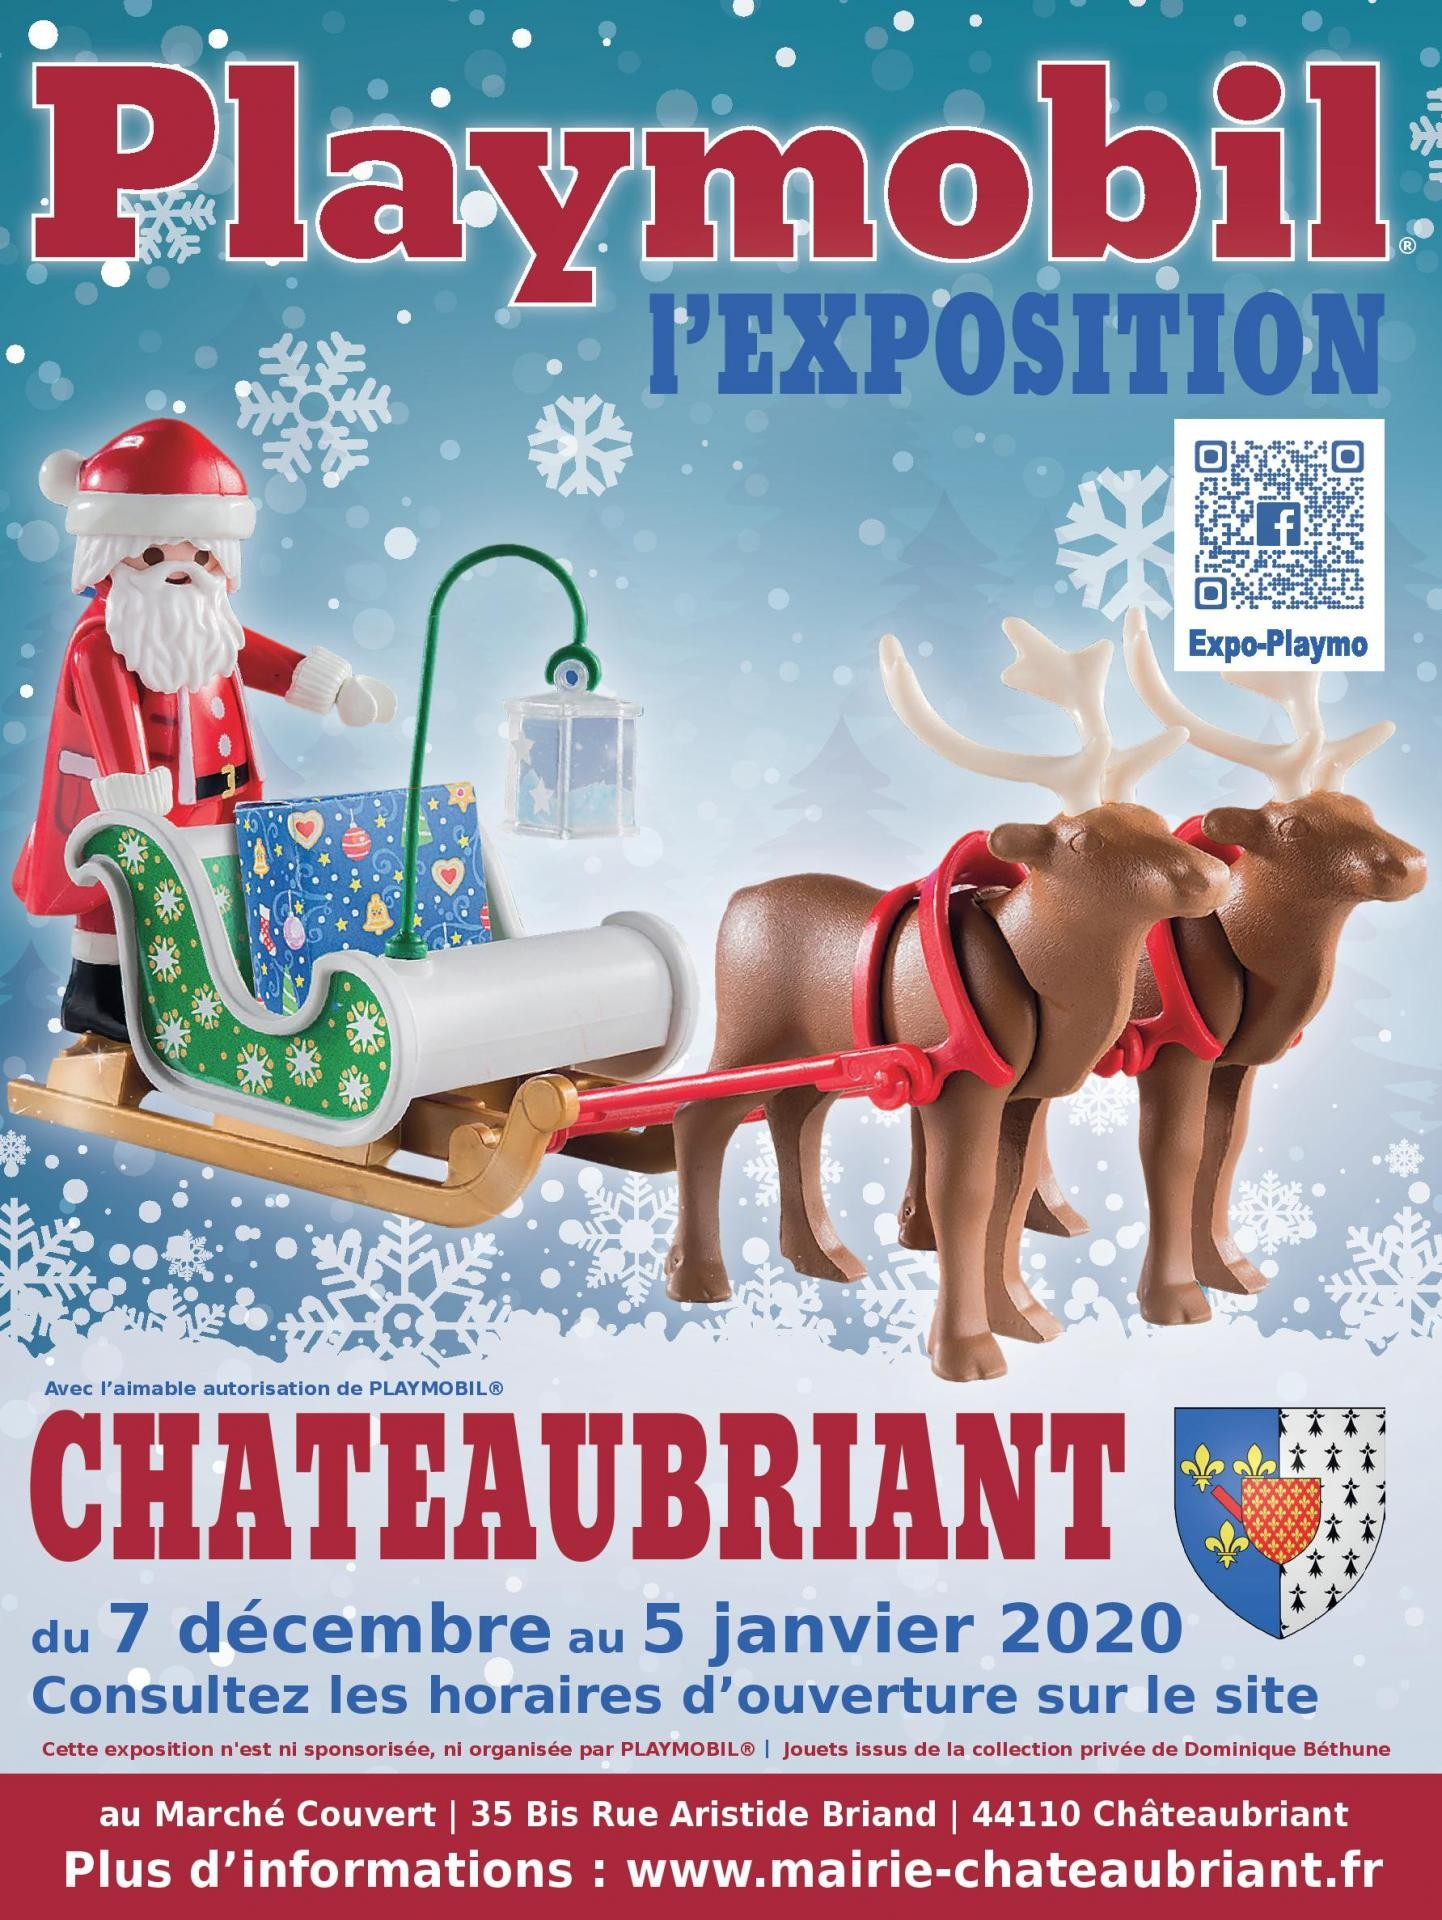 Affiche exposition playmobil chateaubriant 2019 dominique bethune